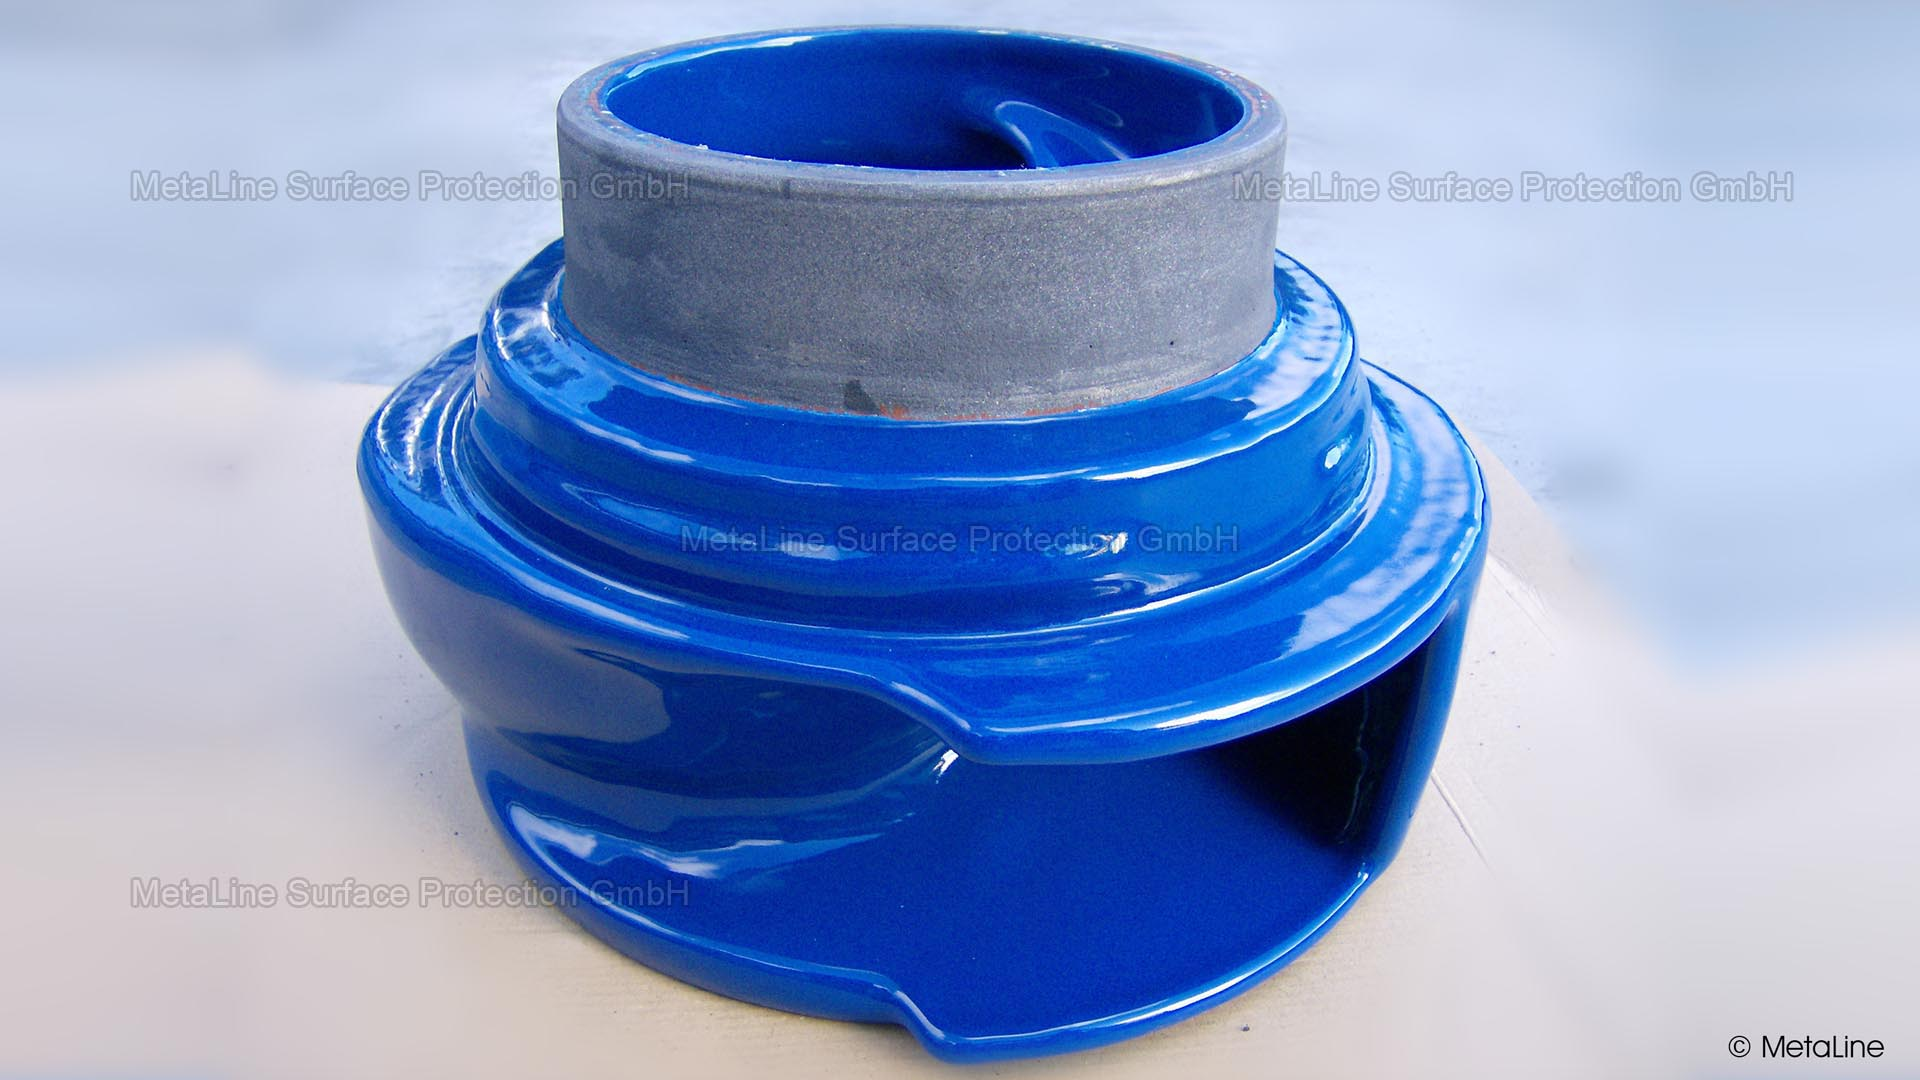 <!-- START: ConditionalContent --><!-- END: ConditionalContent -->   <!-- START: ConditionalContent --> impeller; pump; impeller; wear; erosion; corrosion; cavitation; rubber coating; repair; wear-resistant; coating; ceramic; efficiency; increase; wear <!-- END: ConditionalContent -->   <!-- START: ConditionalContent --><!-- END: ConditionalContent -->   <!-- START: ConditionalContent --><!-- END: ConditionalContent -->